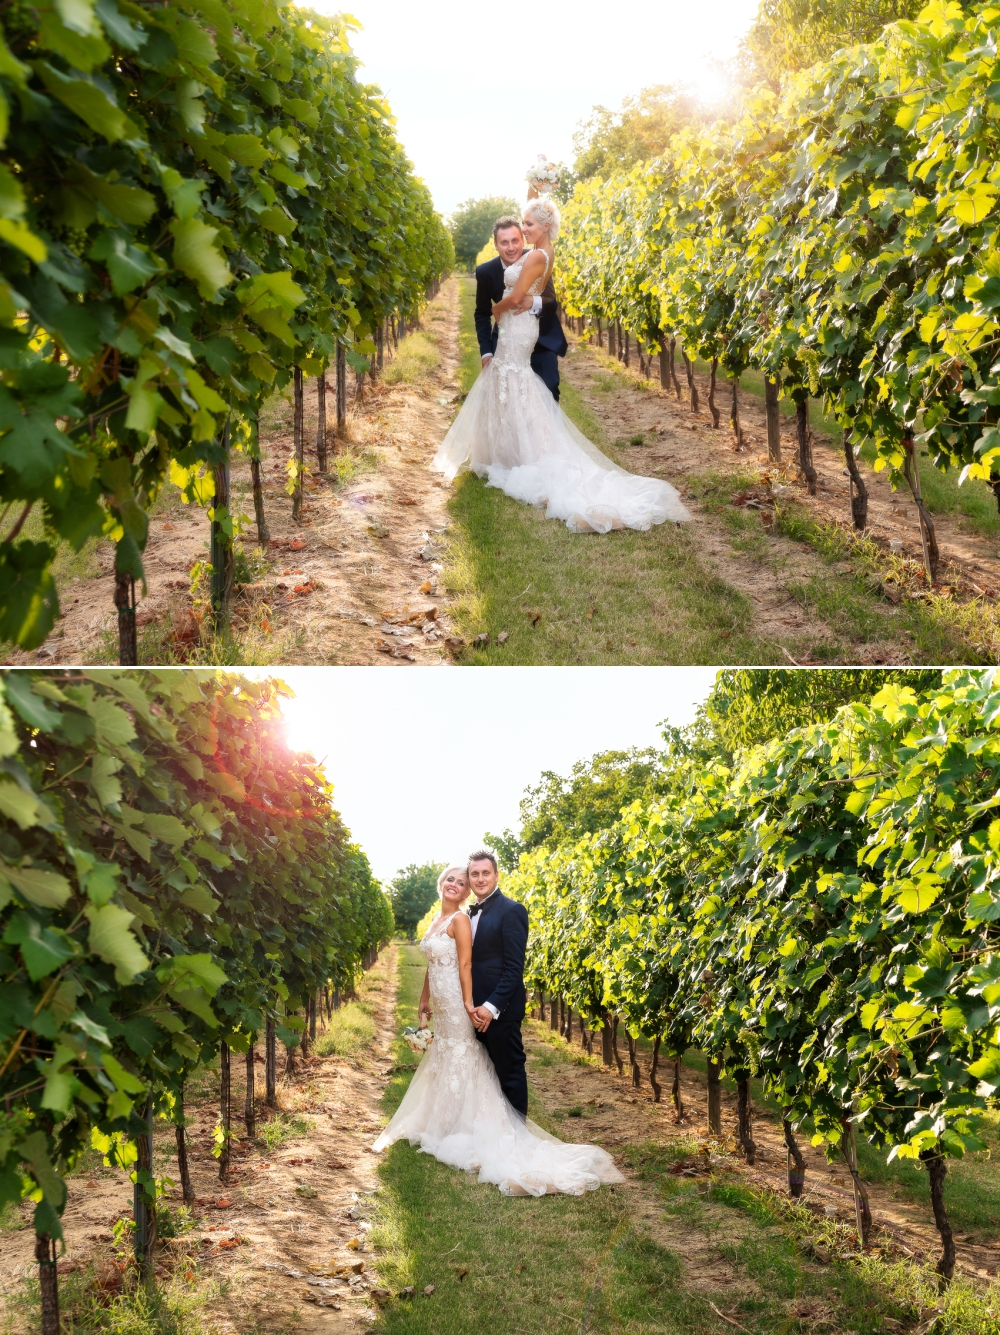 tagg-photography-wedding-miky-charlie-15